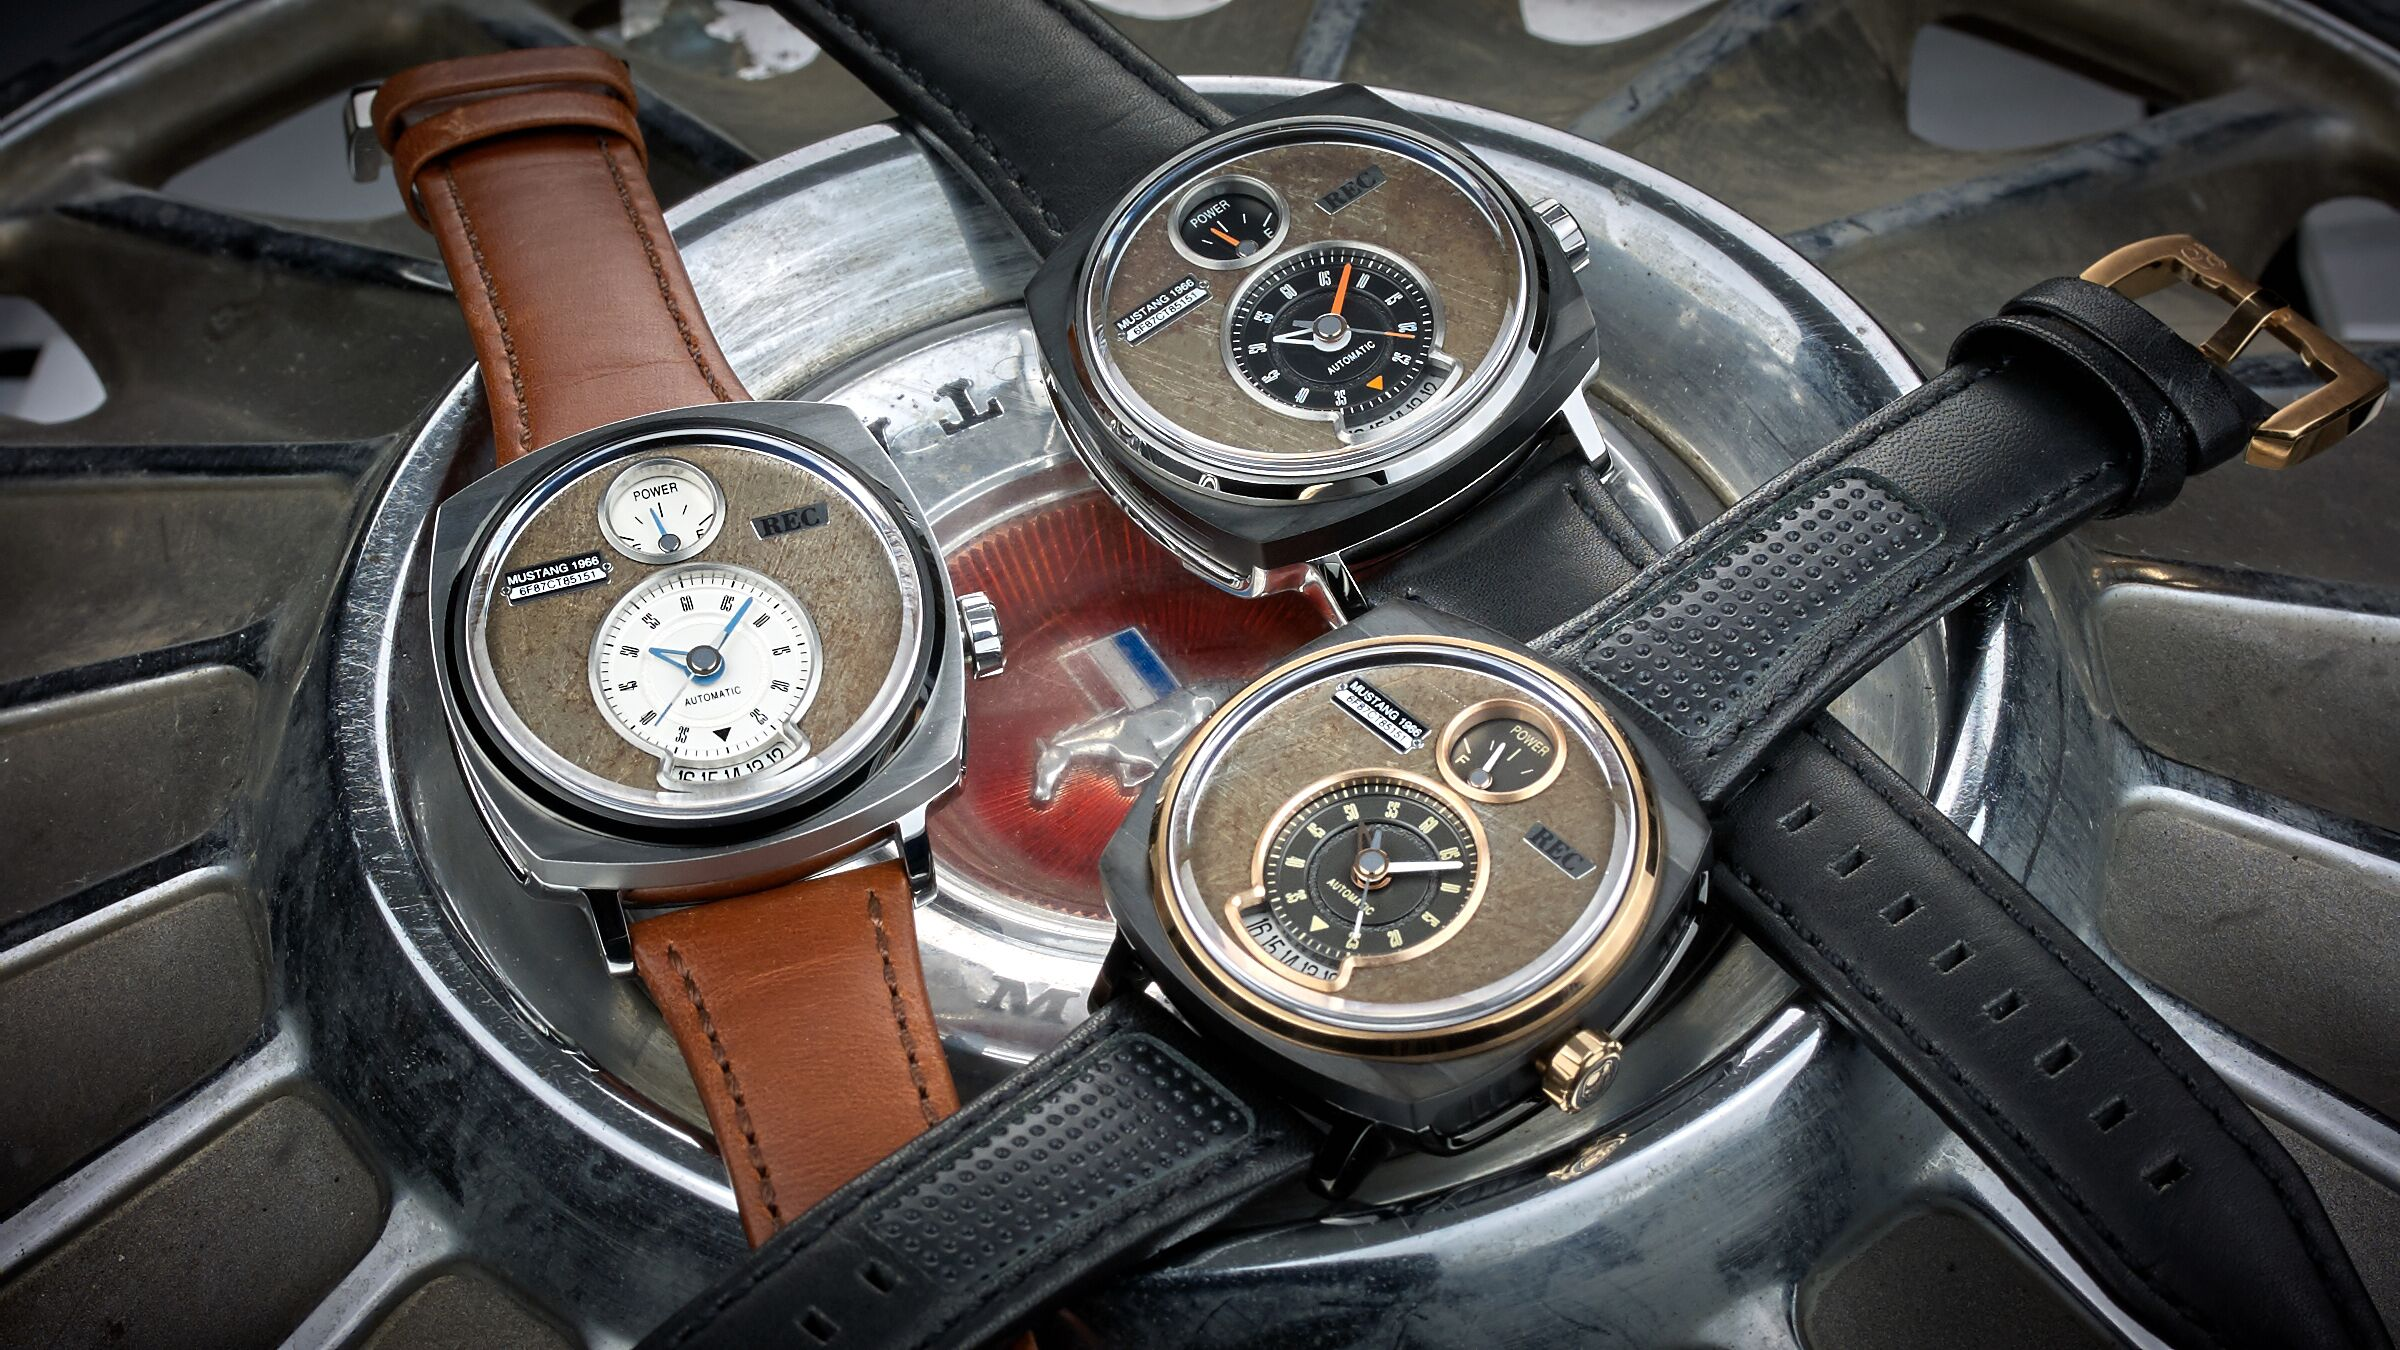 Scrapped Mustangs Get Upcycled as High End Watches